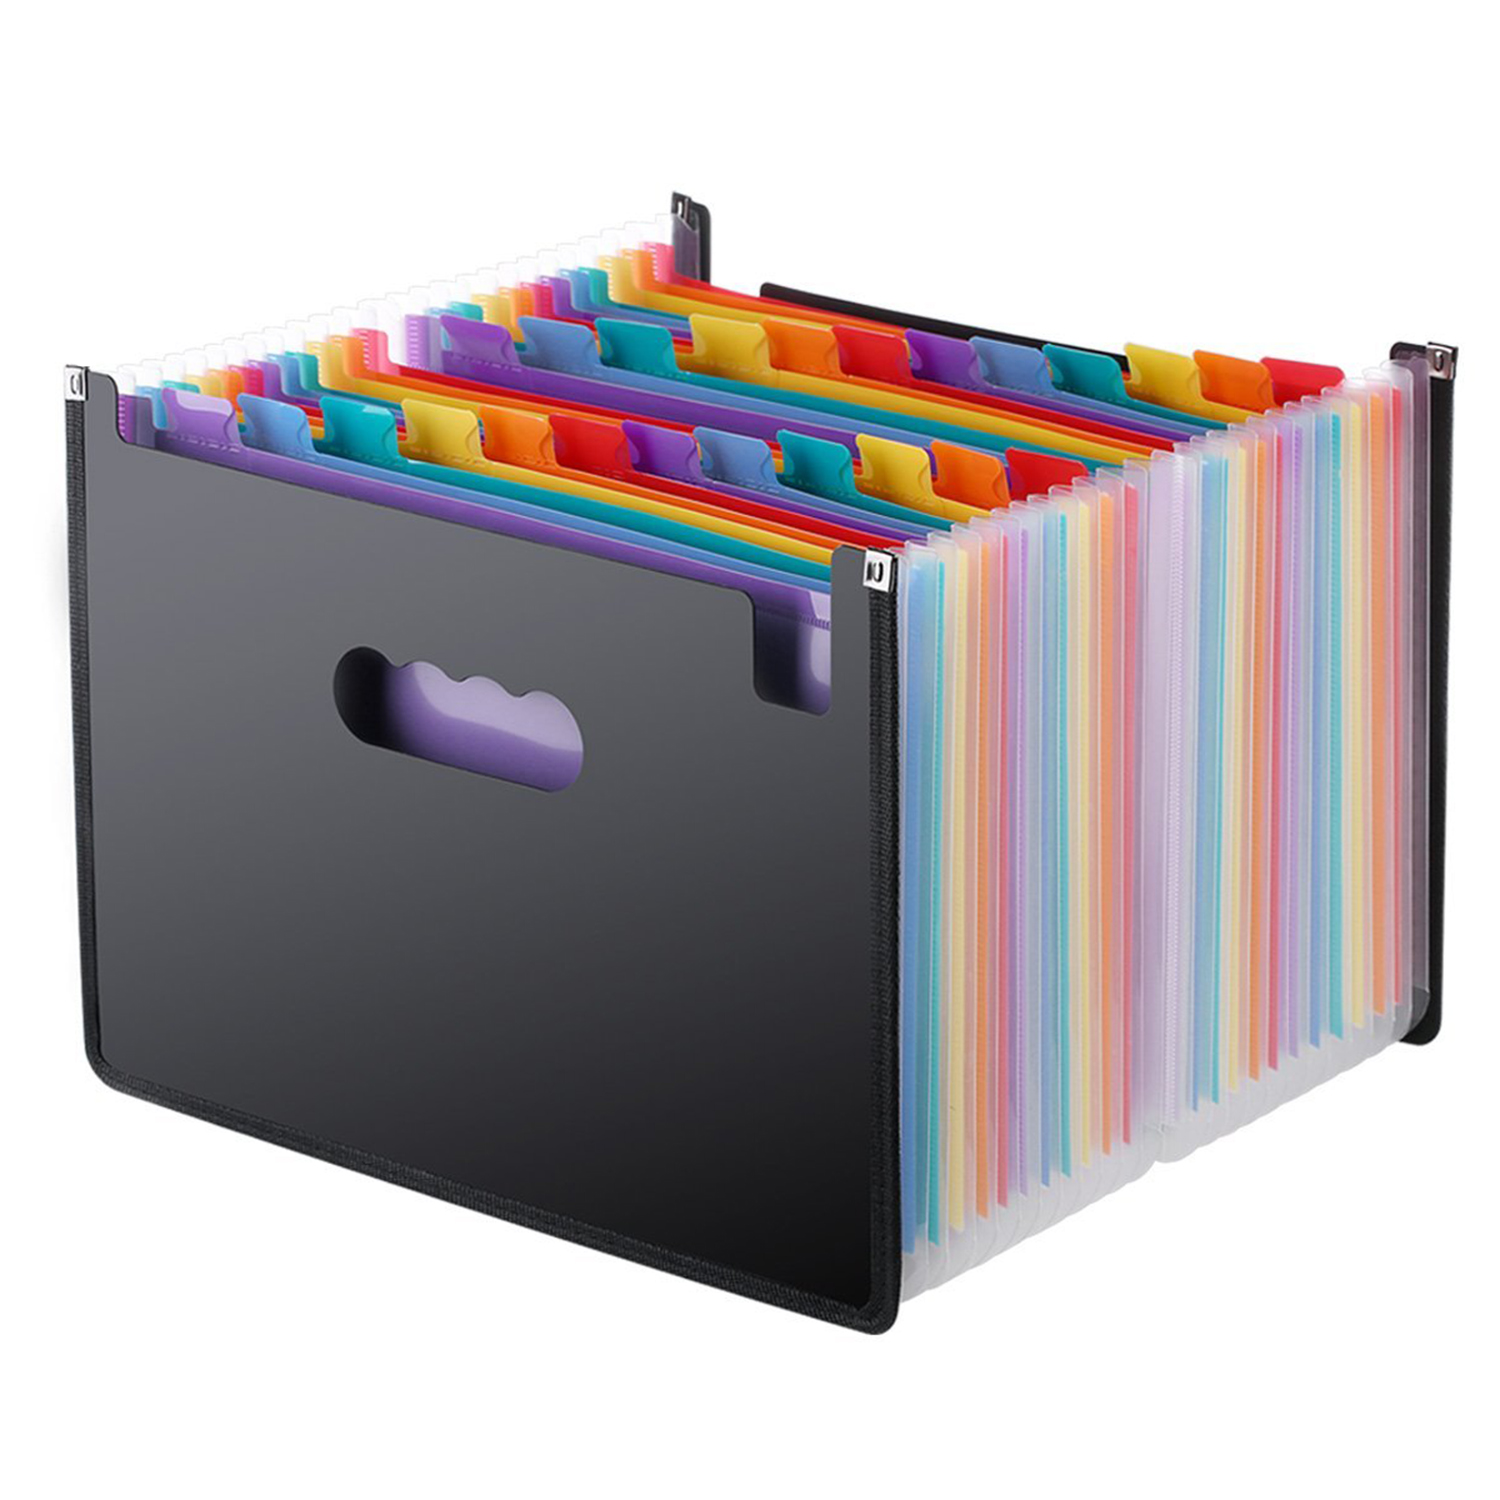 PPYY NEW -Expanding File Folder 24 Pockets, black Accordion A4 folder ppyy new 12 pockets expanding files folder a4 expandable file organizer portable accordion file folder high capacity multi